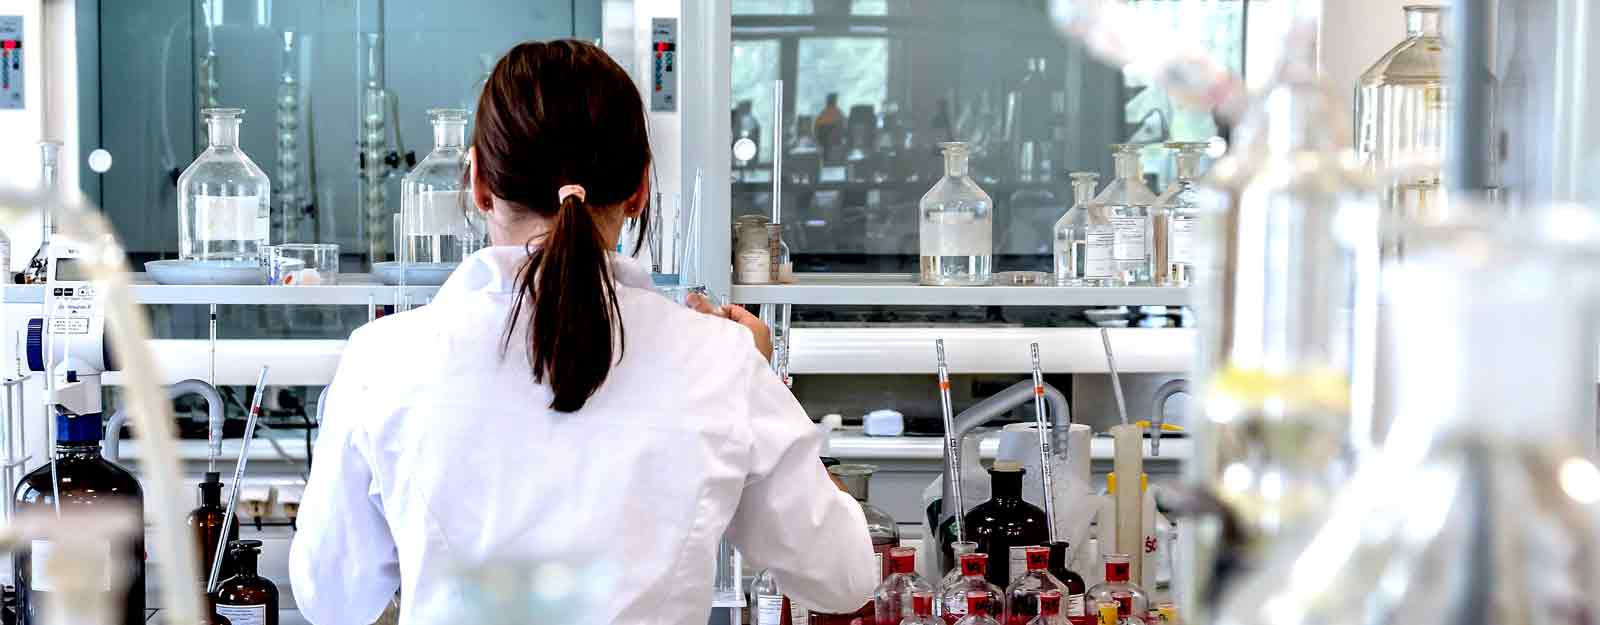 Photo of a scientist working in a laboratory,